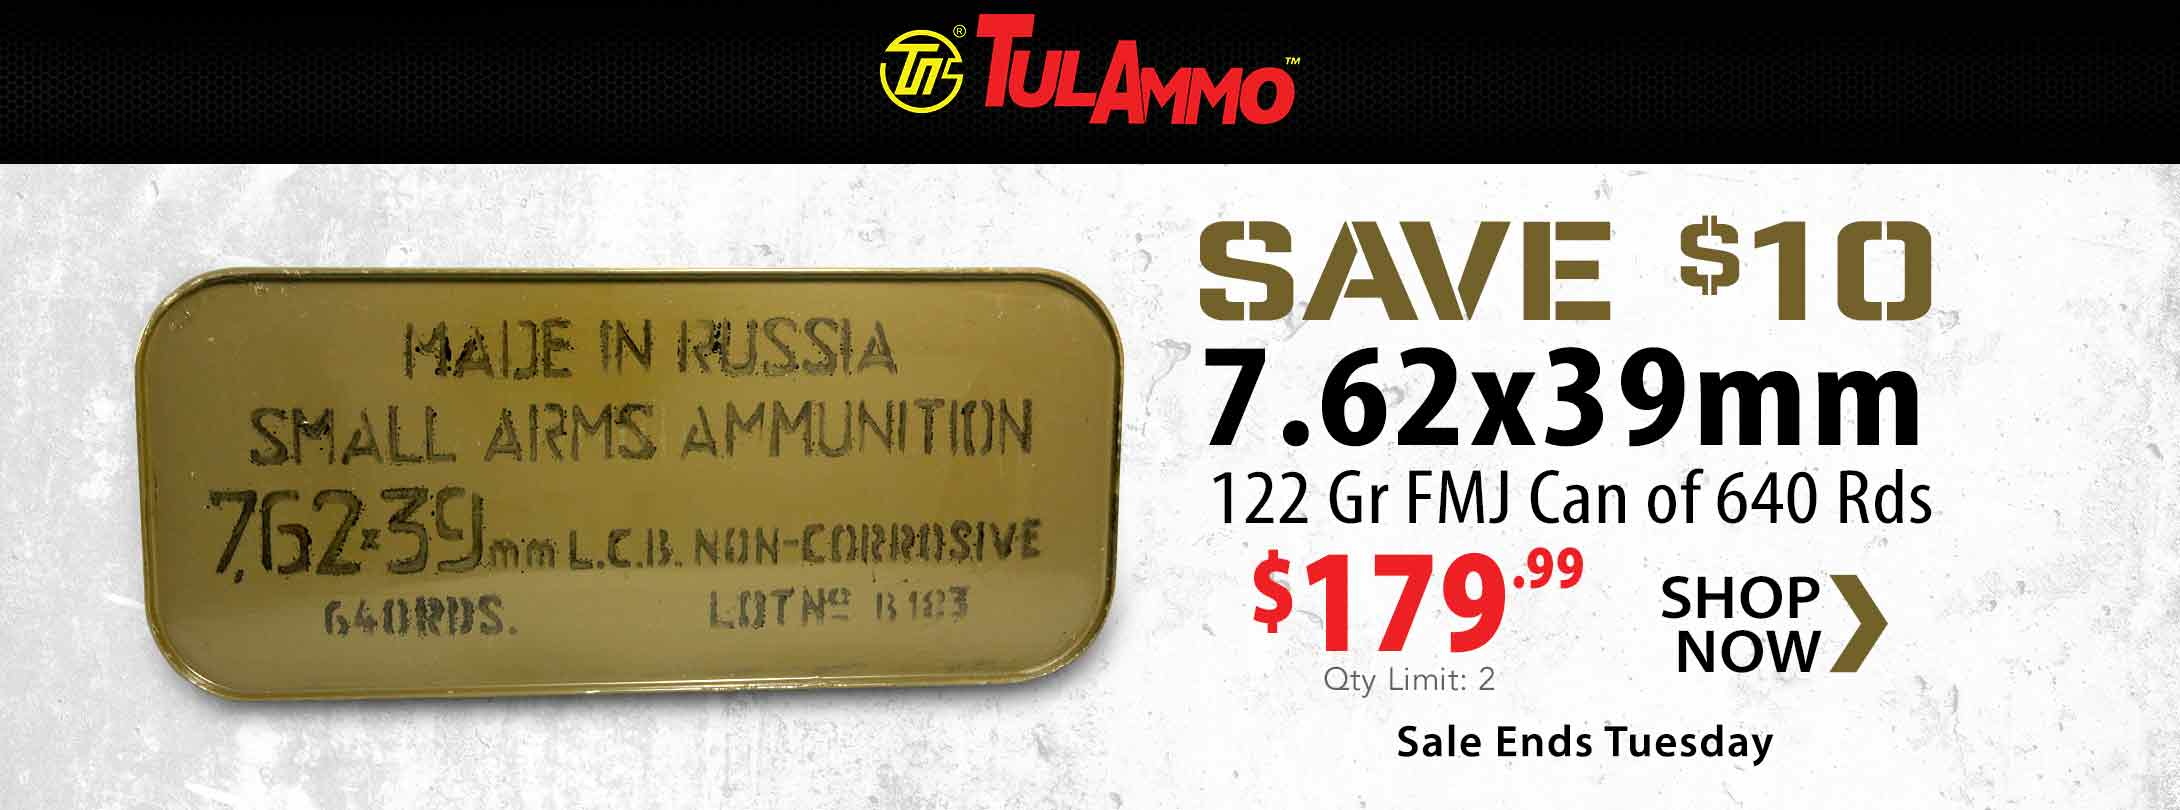 $10 Off tulAmmo 7.62x39mm 122 Gr FMJ Can of 640